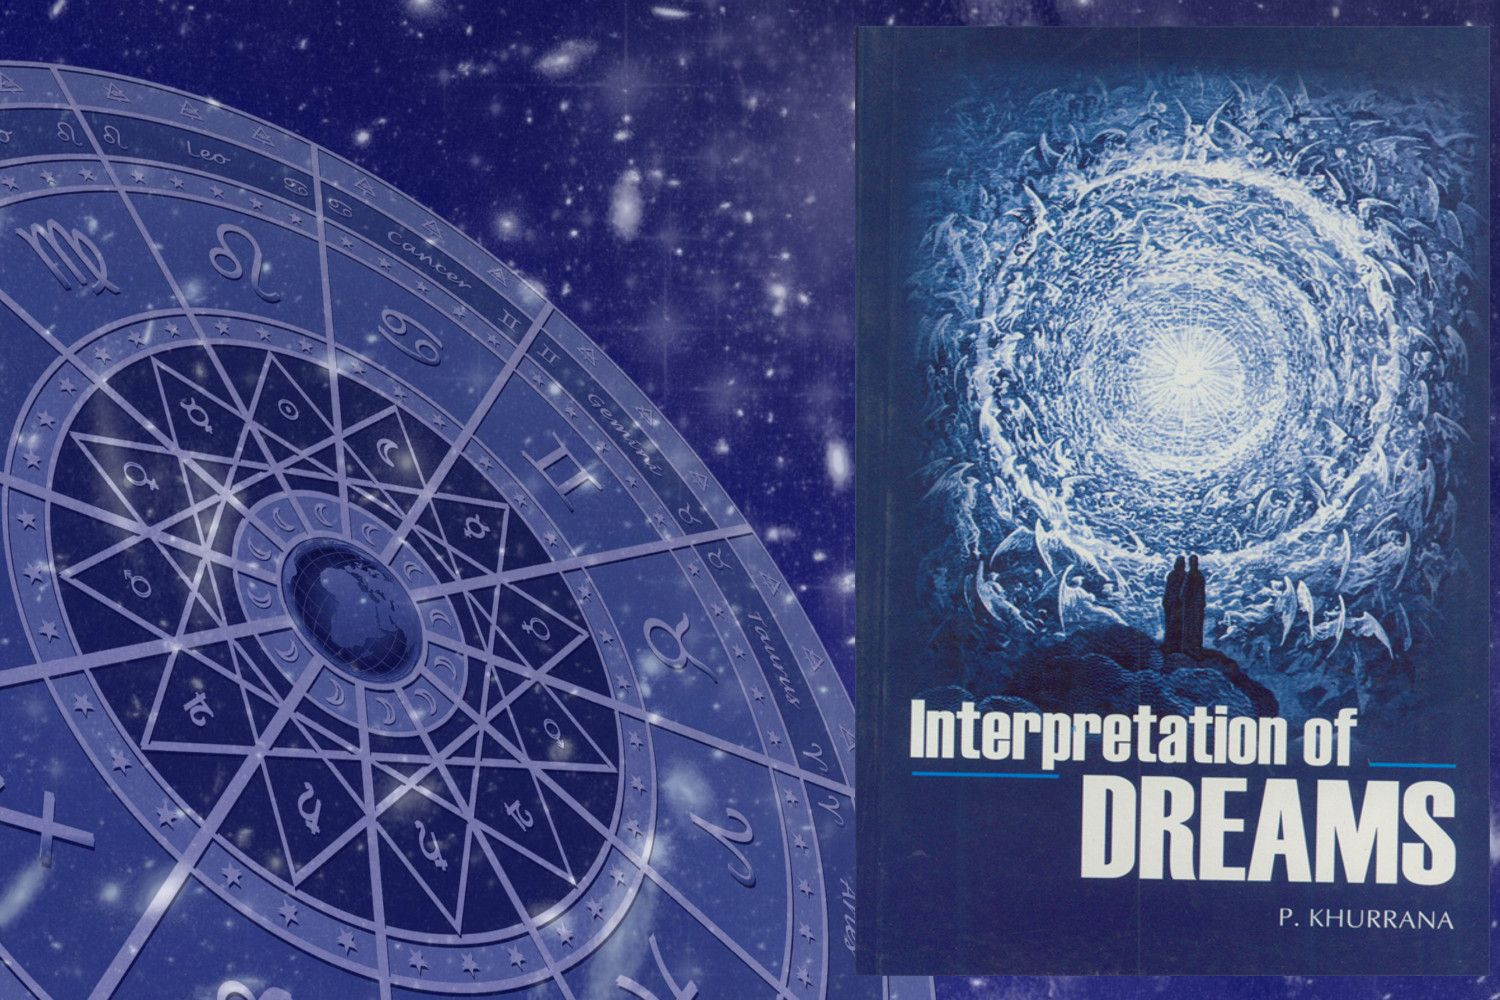 Interpretation Of Dreams Is A Astrology Book By P Khurrana Do Dreams Have Meaning Where Do They Originate Best Astrology Books Astrology Books Interpretation